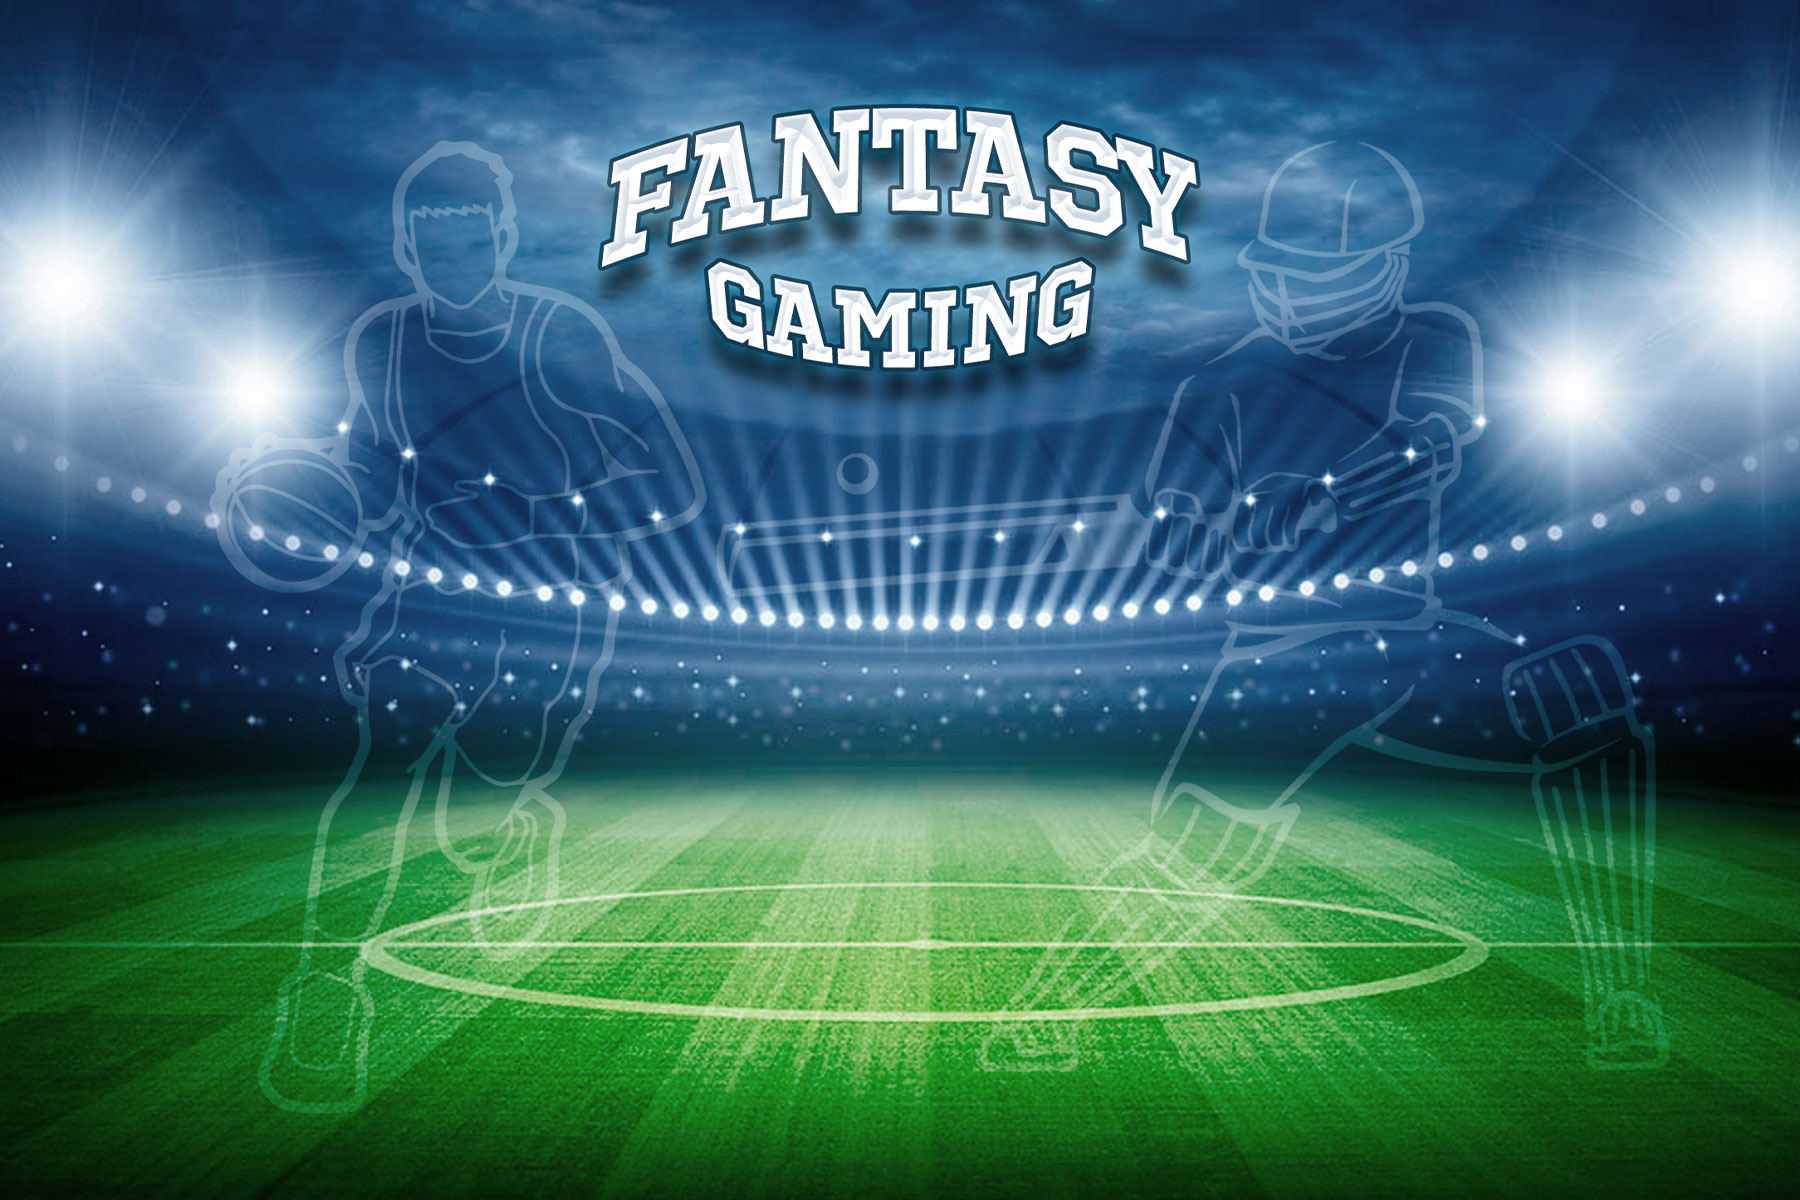 Why should gaming companies lean towards live fantasy games going forward?